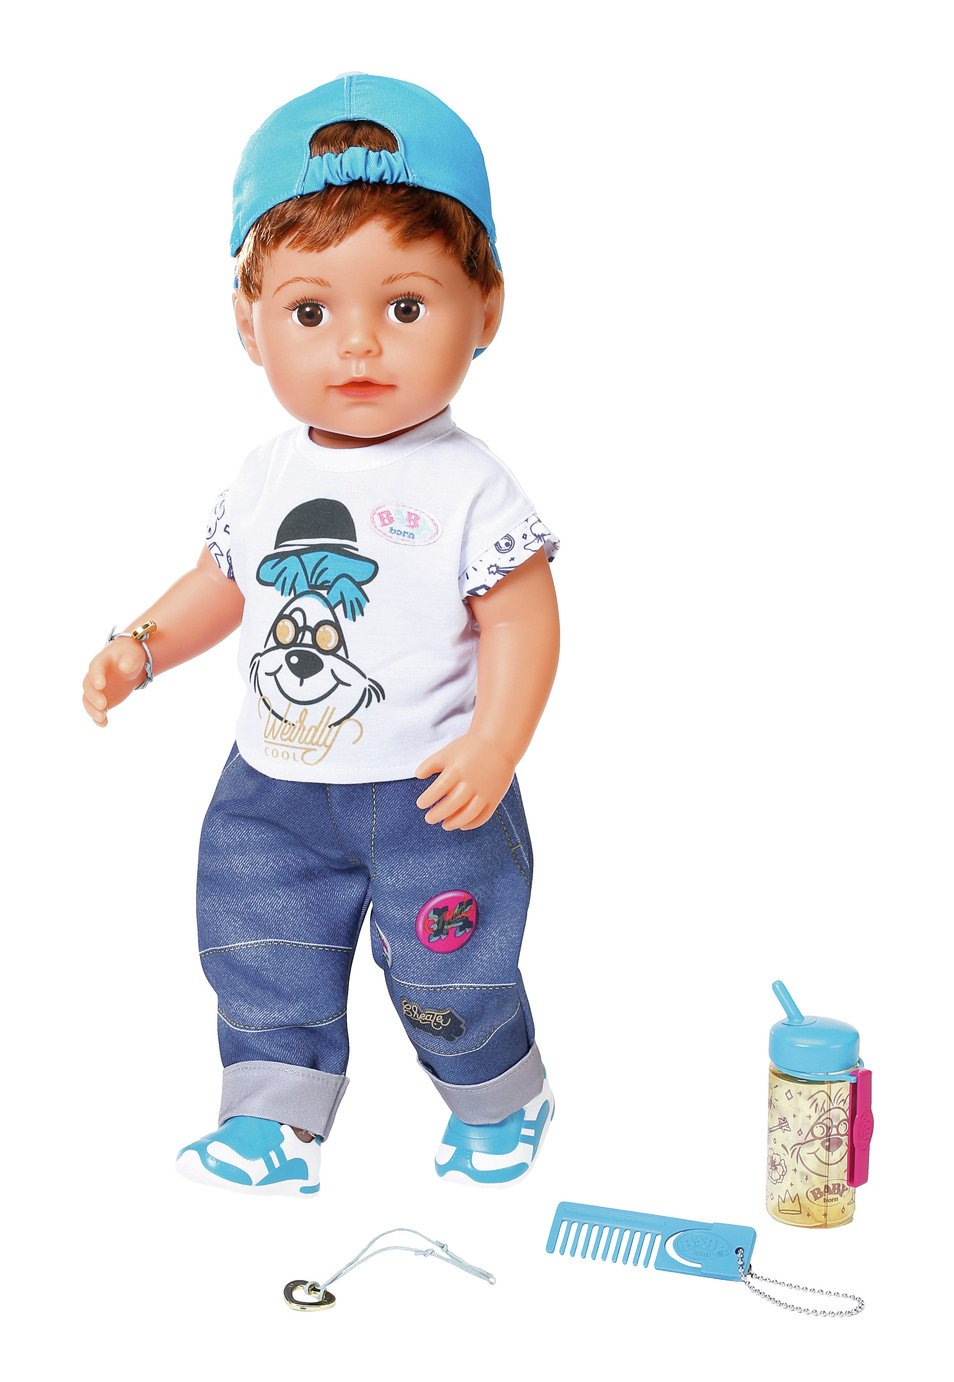 BABY Born Brother Doll